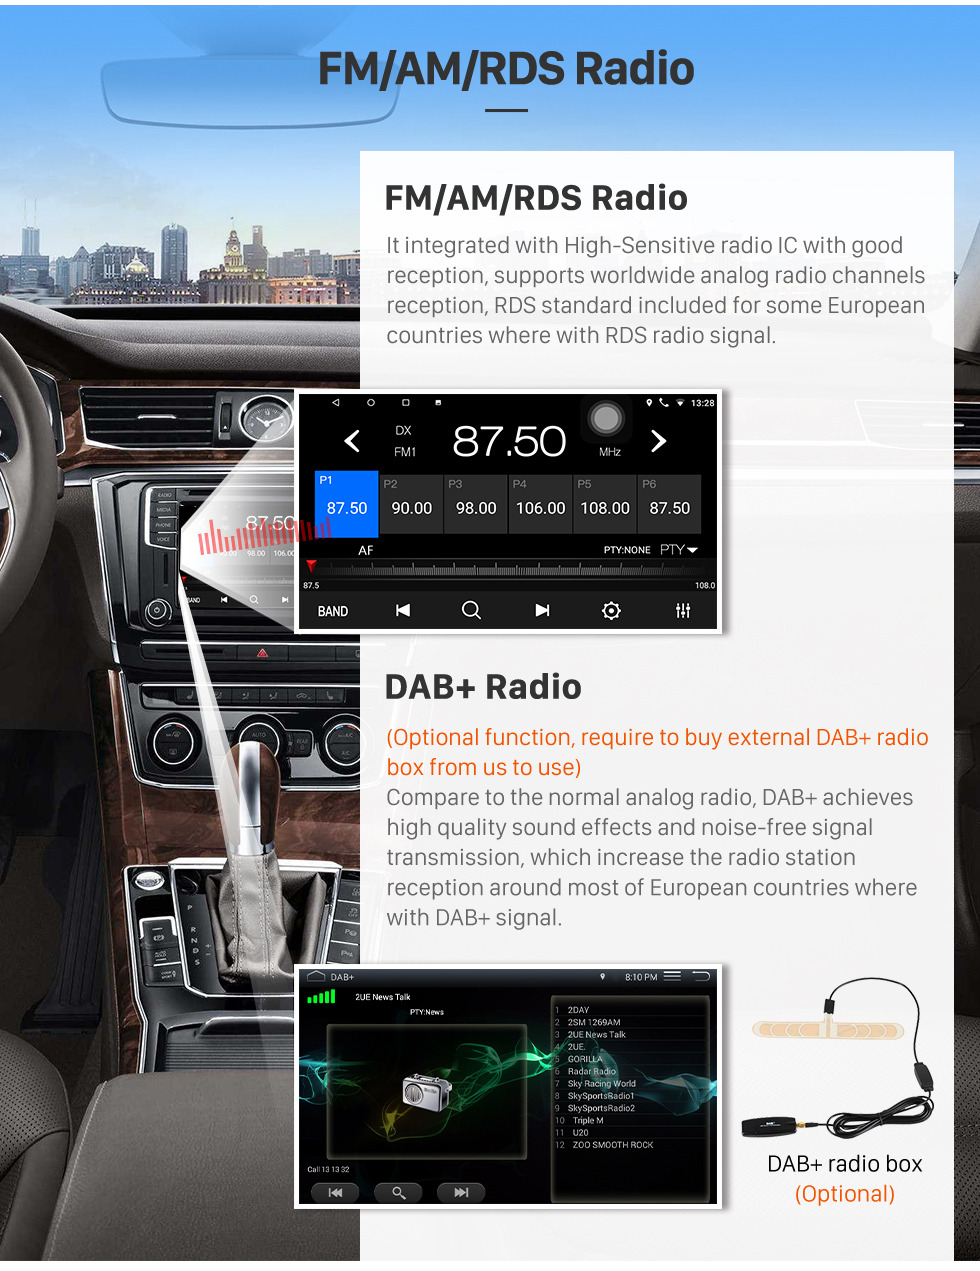 Seicane 9 Inch Android 8.1 Touchscreen Bluetooth Radio For 2013 2014 Subaru XR Forester  Impreza 3G WiFi GPS Navigation system Bluetooth music TPMS DVR OBD II Rear camera AUX